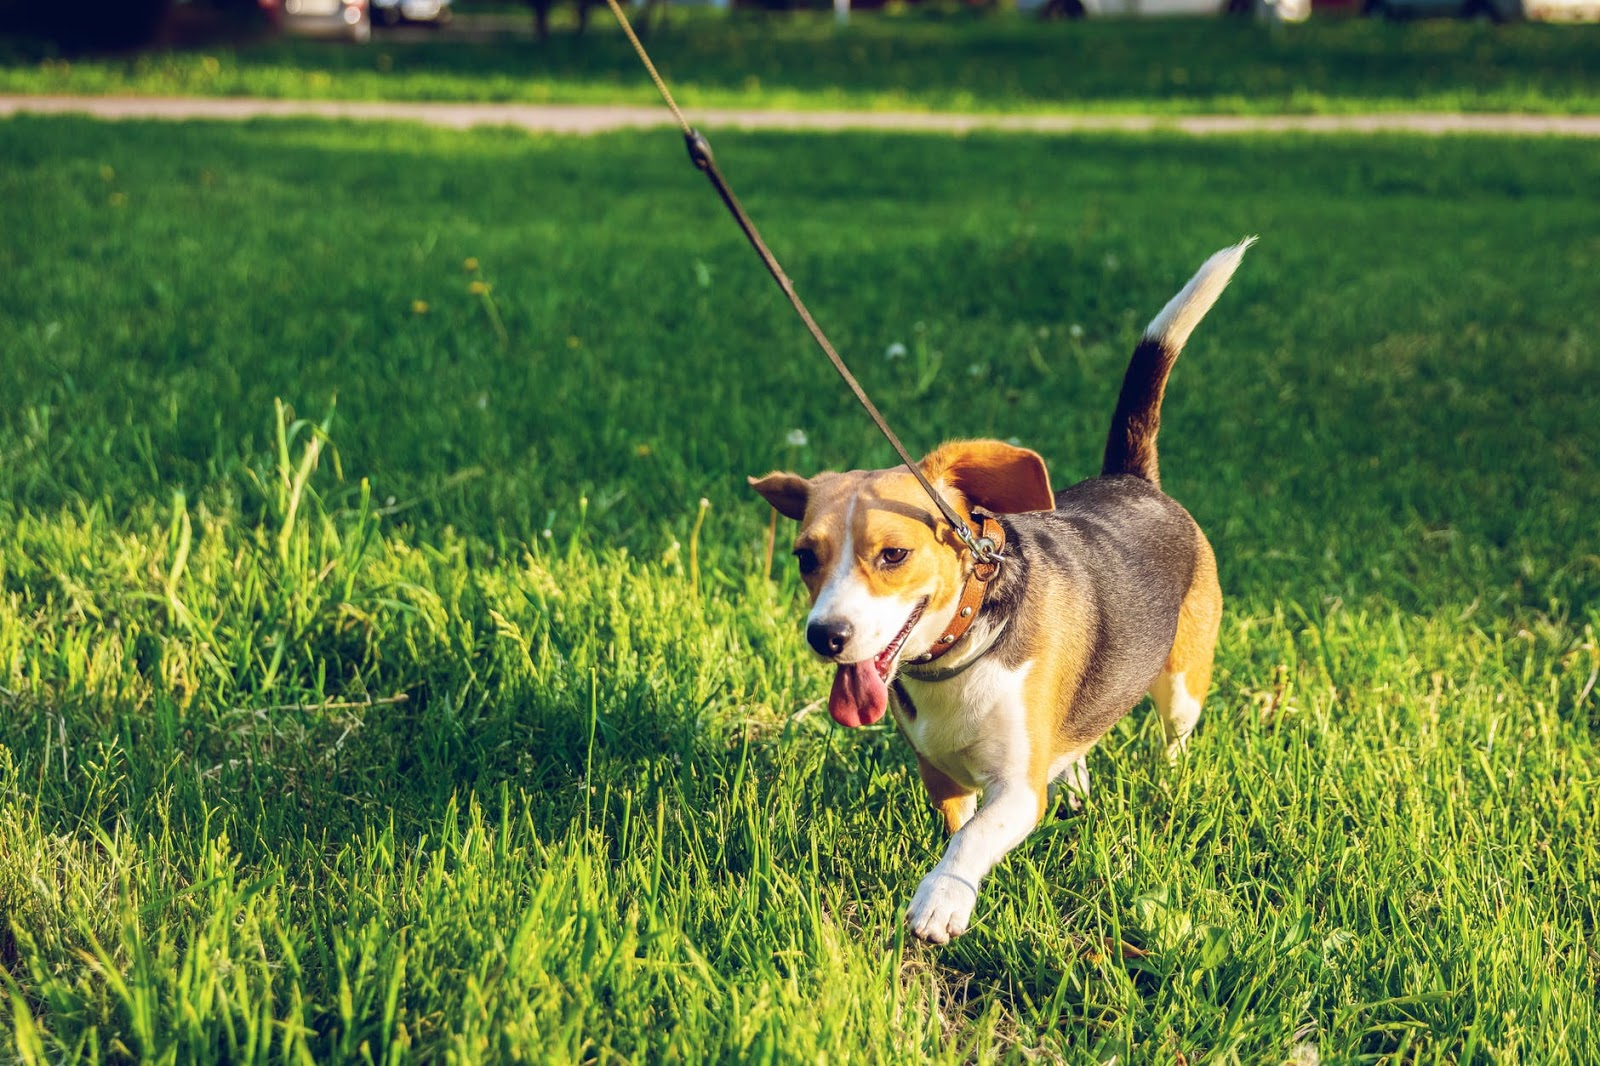 A happy beagle on a leash is being walked through a bright green patch of grass.